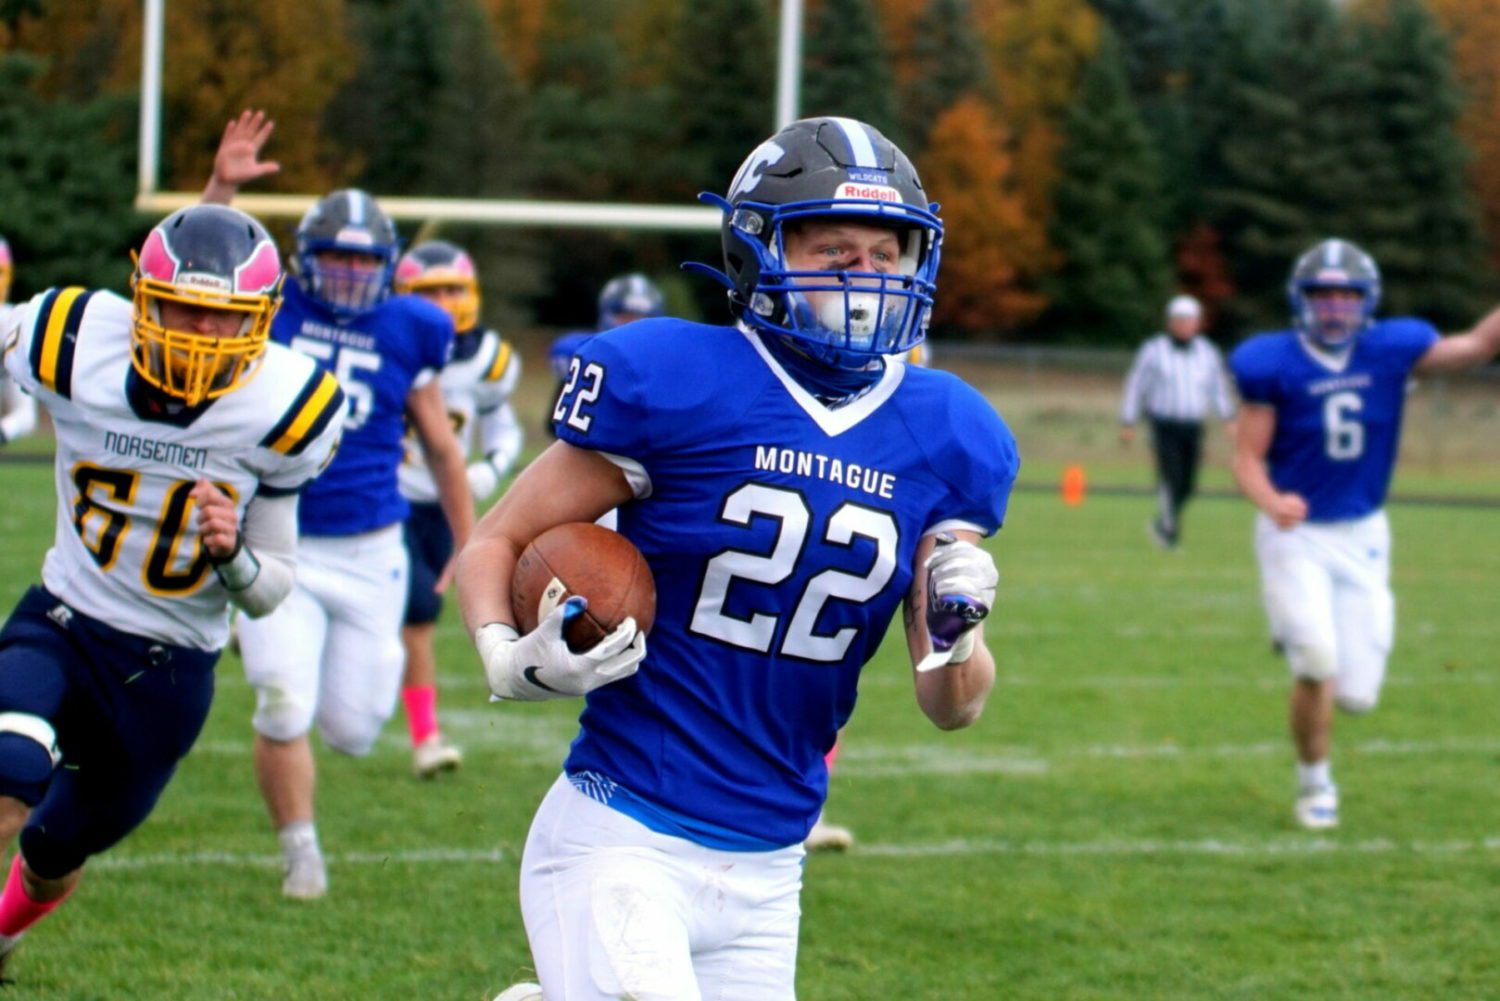 Everett scores 4 TDs as Montague blasts North Muskegon 41-13, clinches conference championship